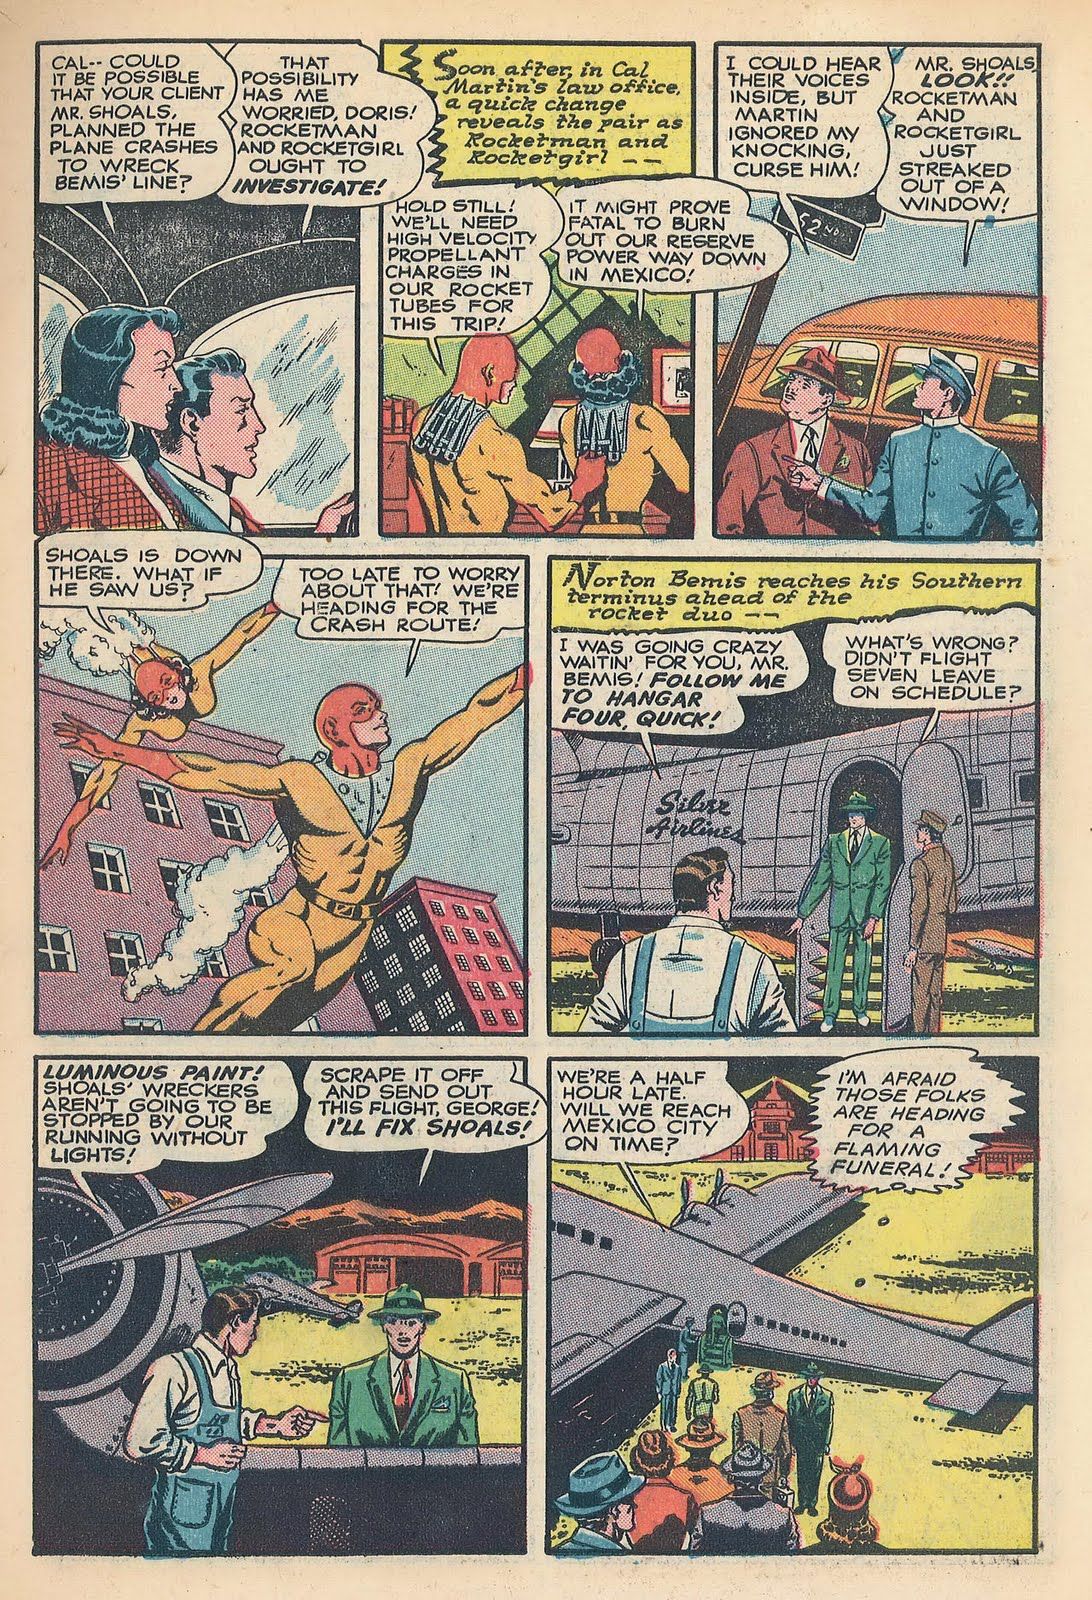 No Cold Air From Ac >> Four-Color Shadows: Rocket Man-Punch Comics-1945